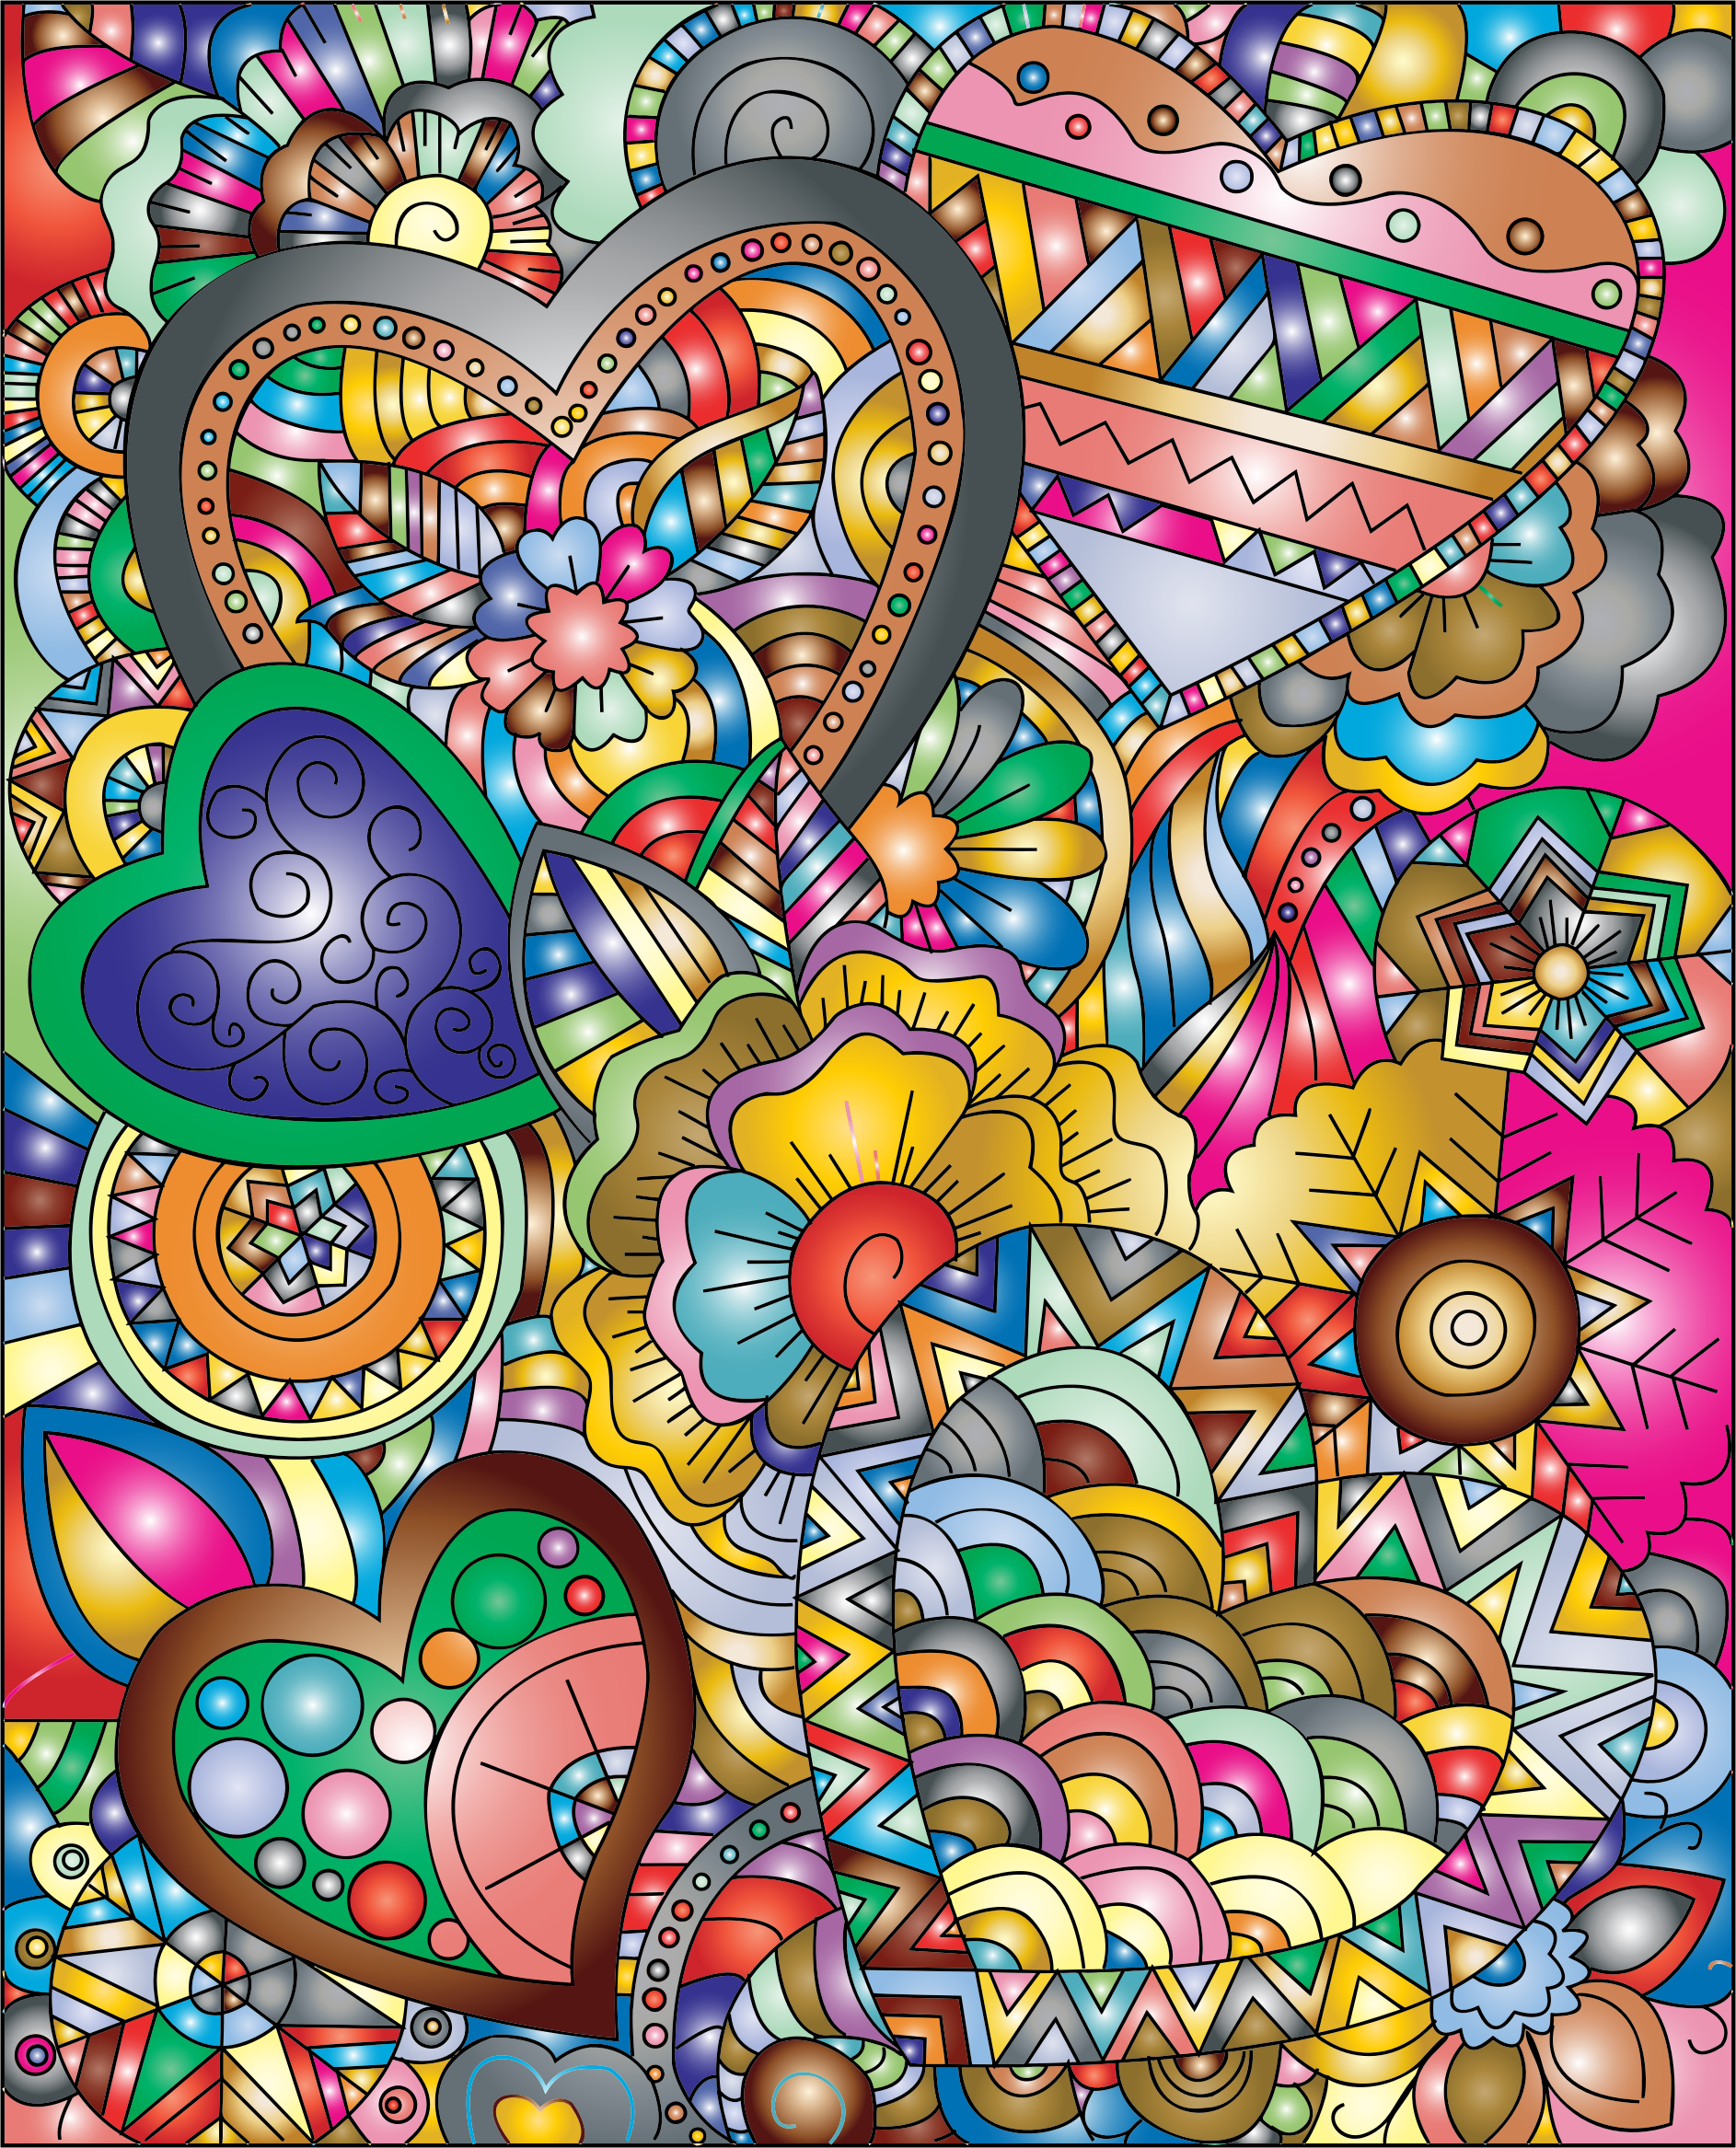 Flourish Hearts Line Art Prismatic by GDJ